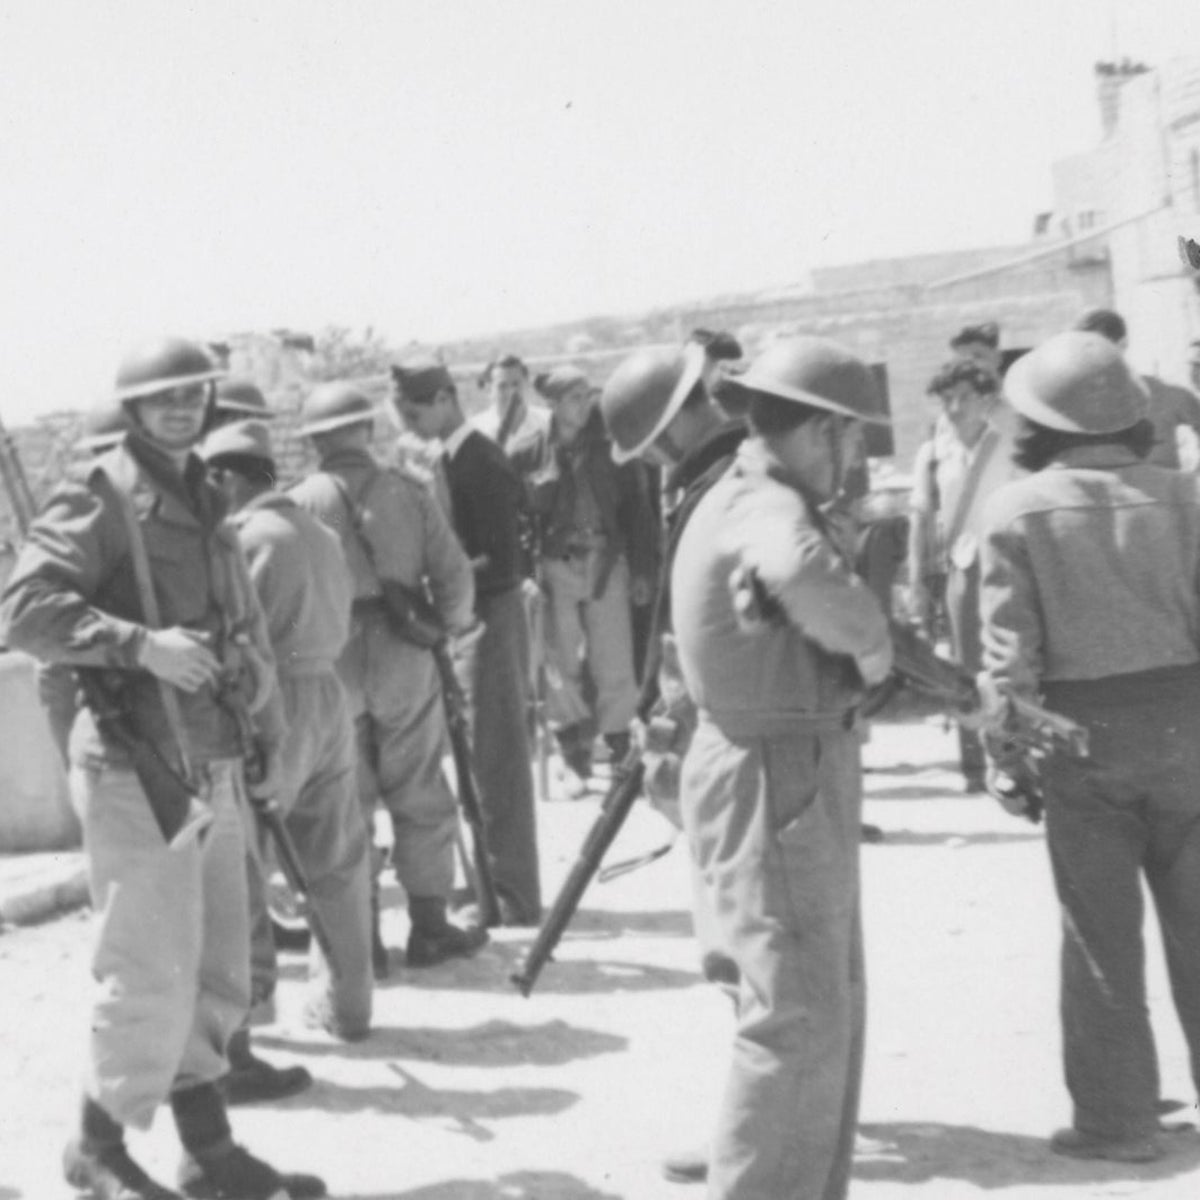 Fighters from Israel's pre-state militia occupying the village of Deir Yassin, April 1948.